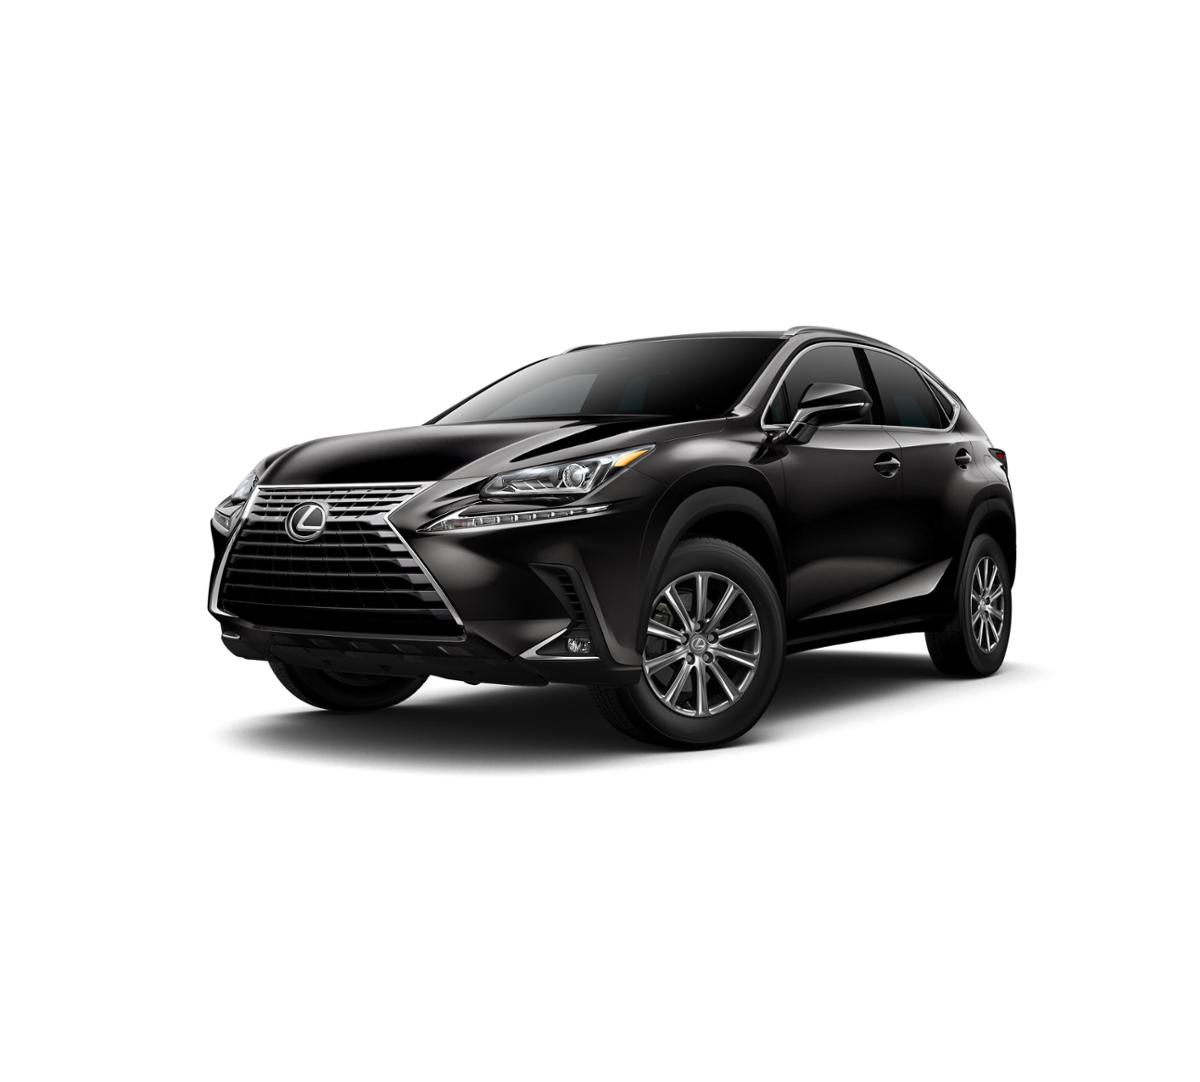 2018 Lexus NX 300 Vehicle Photo in Santa Barbara, CA 93105